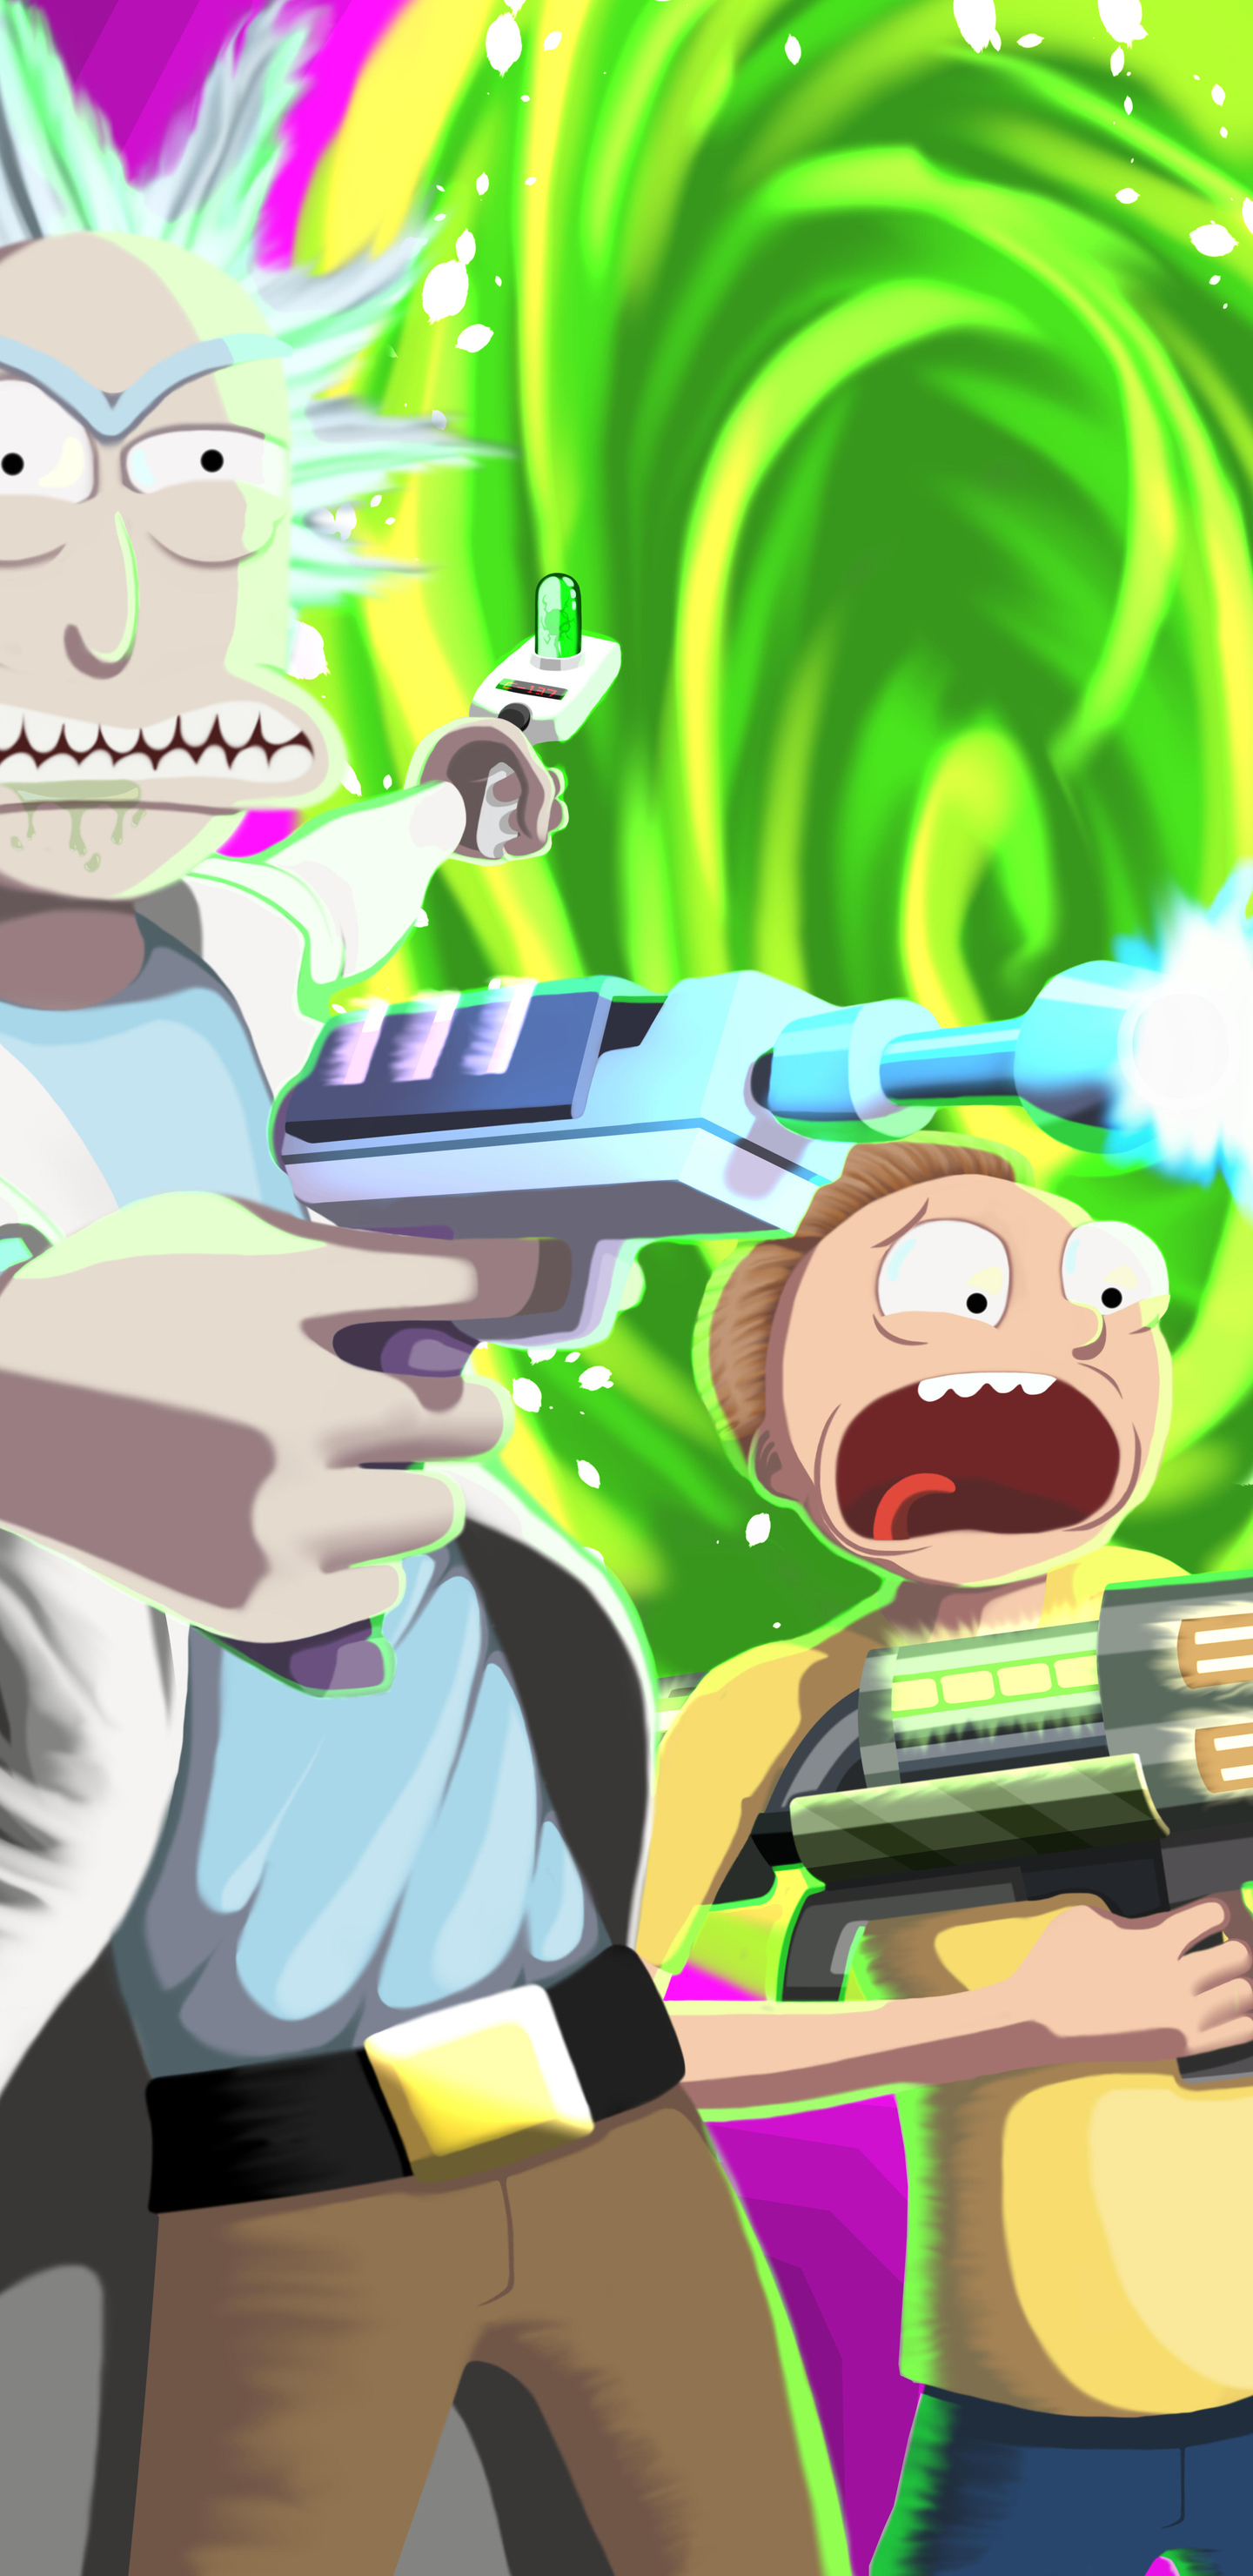 1440x2960 Rick And Morty 8k 2020 Samsung Galaxy Note 9,8 ...